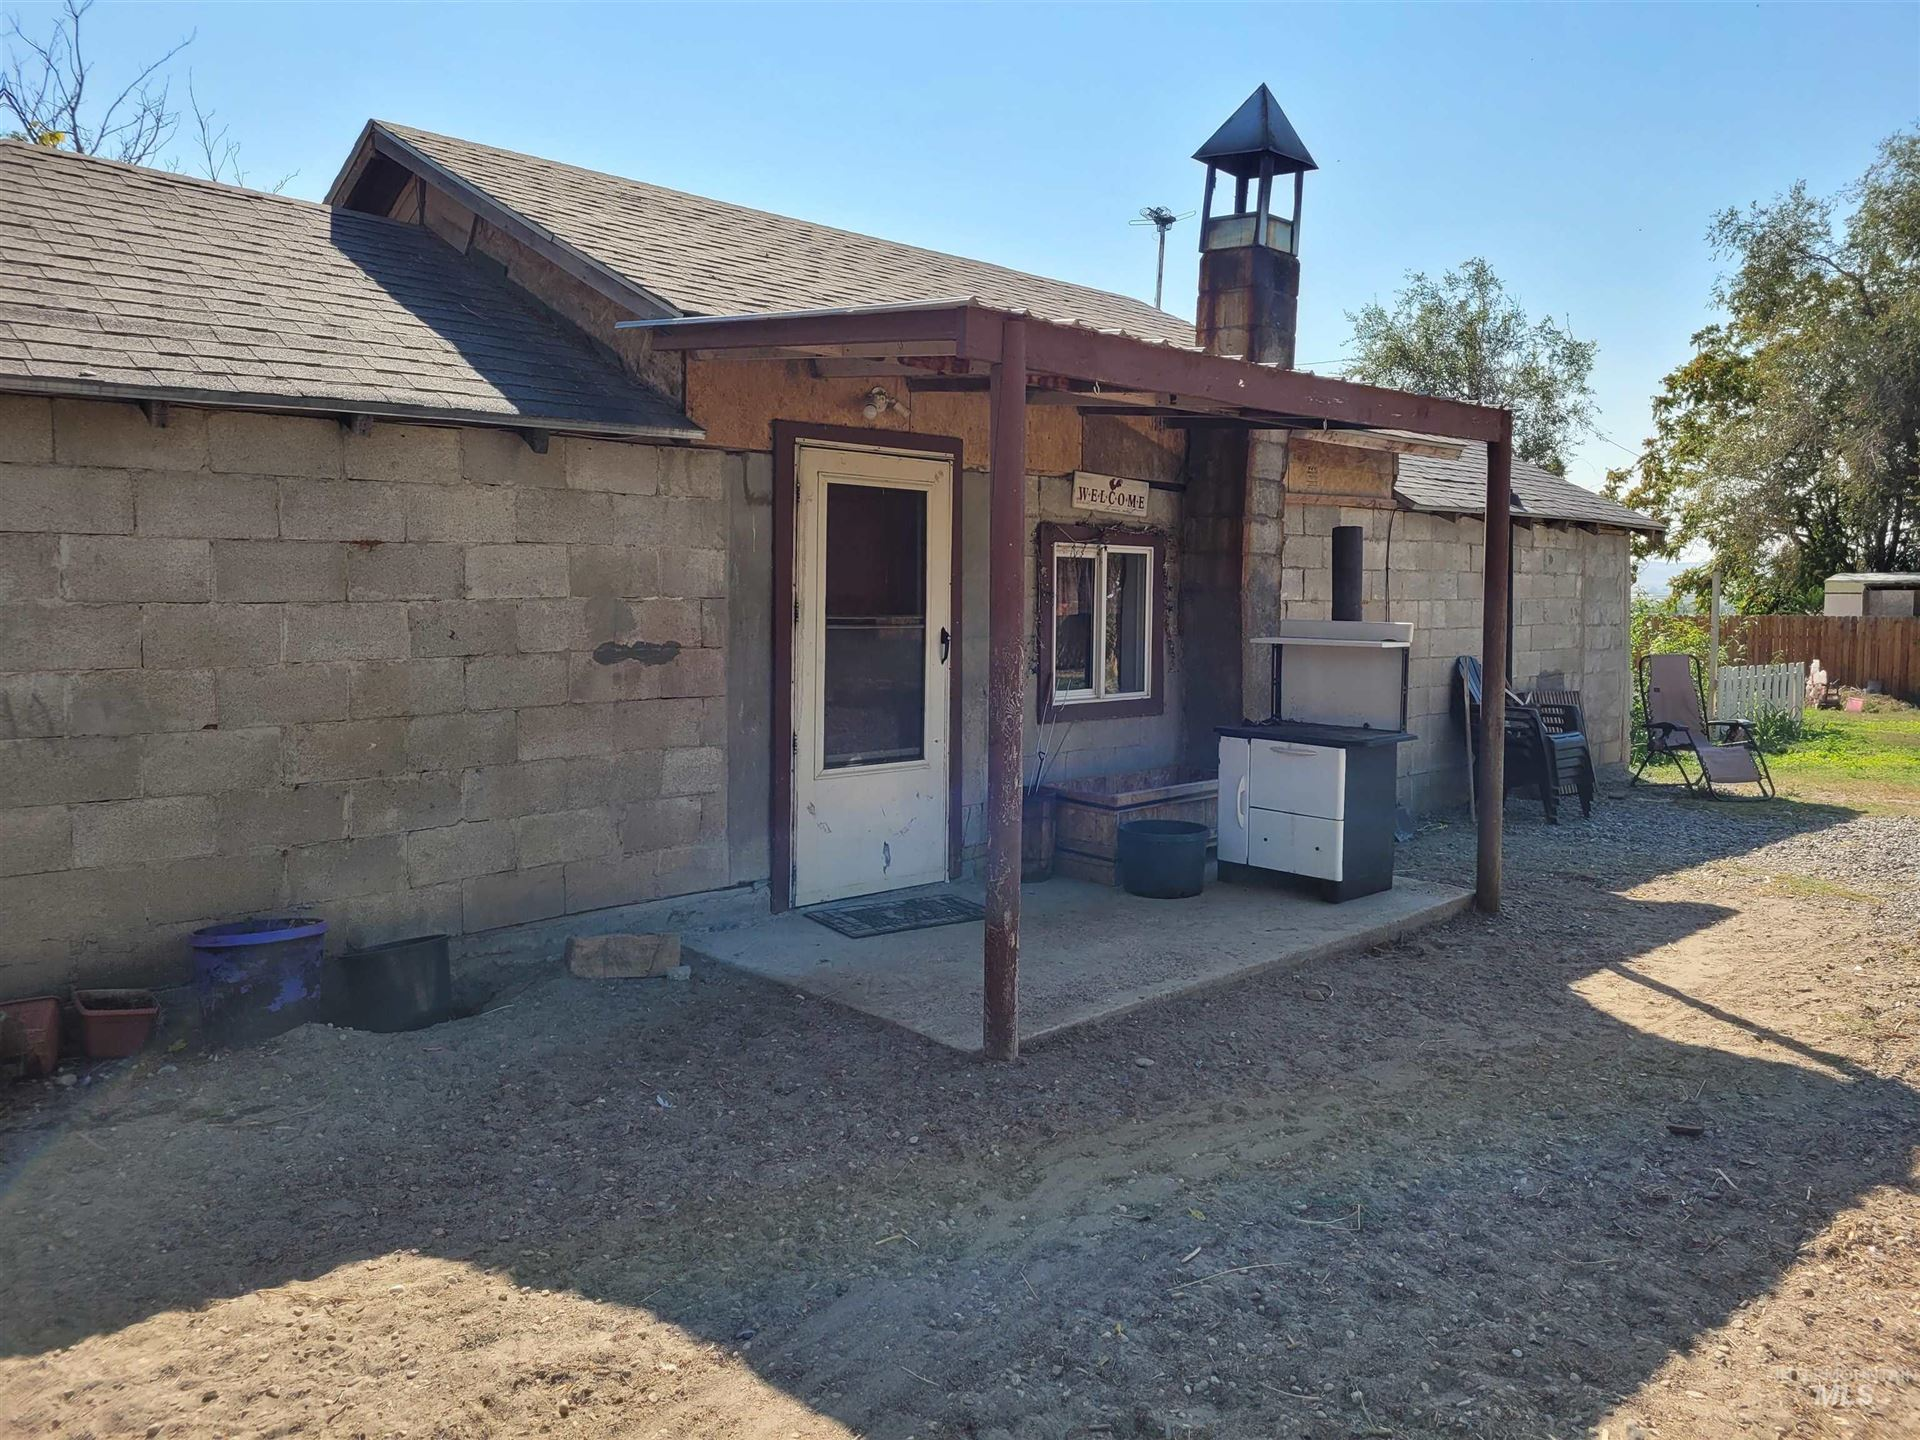 Photo of 15049 Fifth St, Caldwell, ID 83607 (MLS # 98819459)